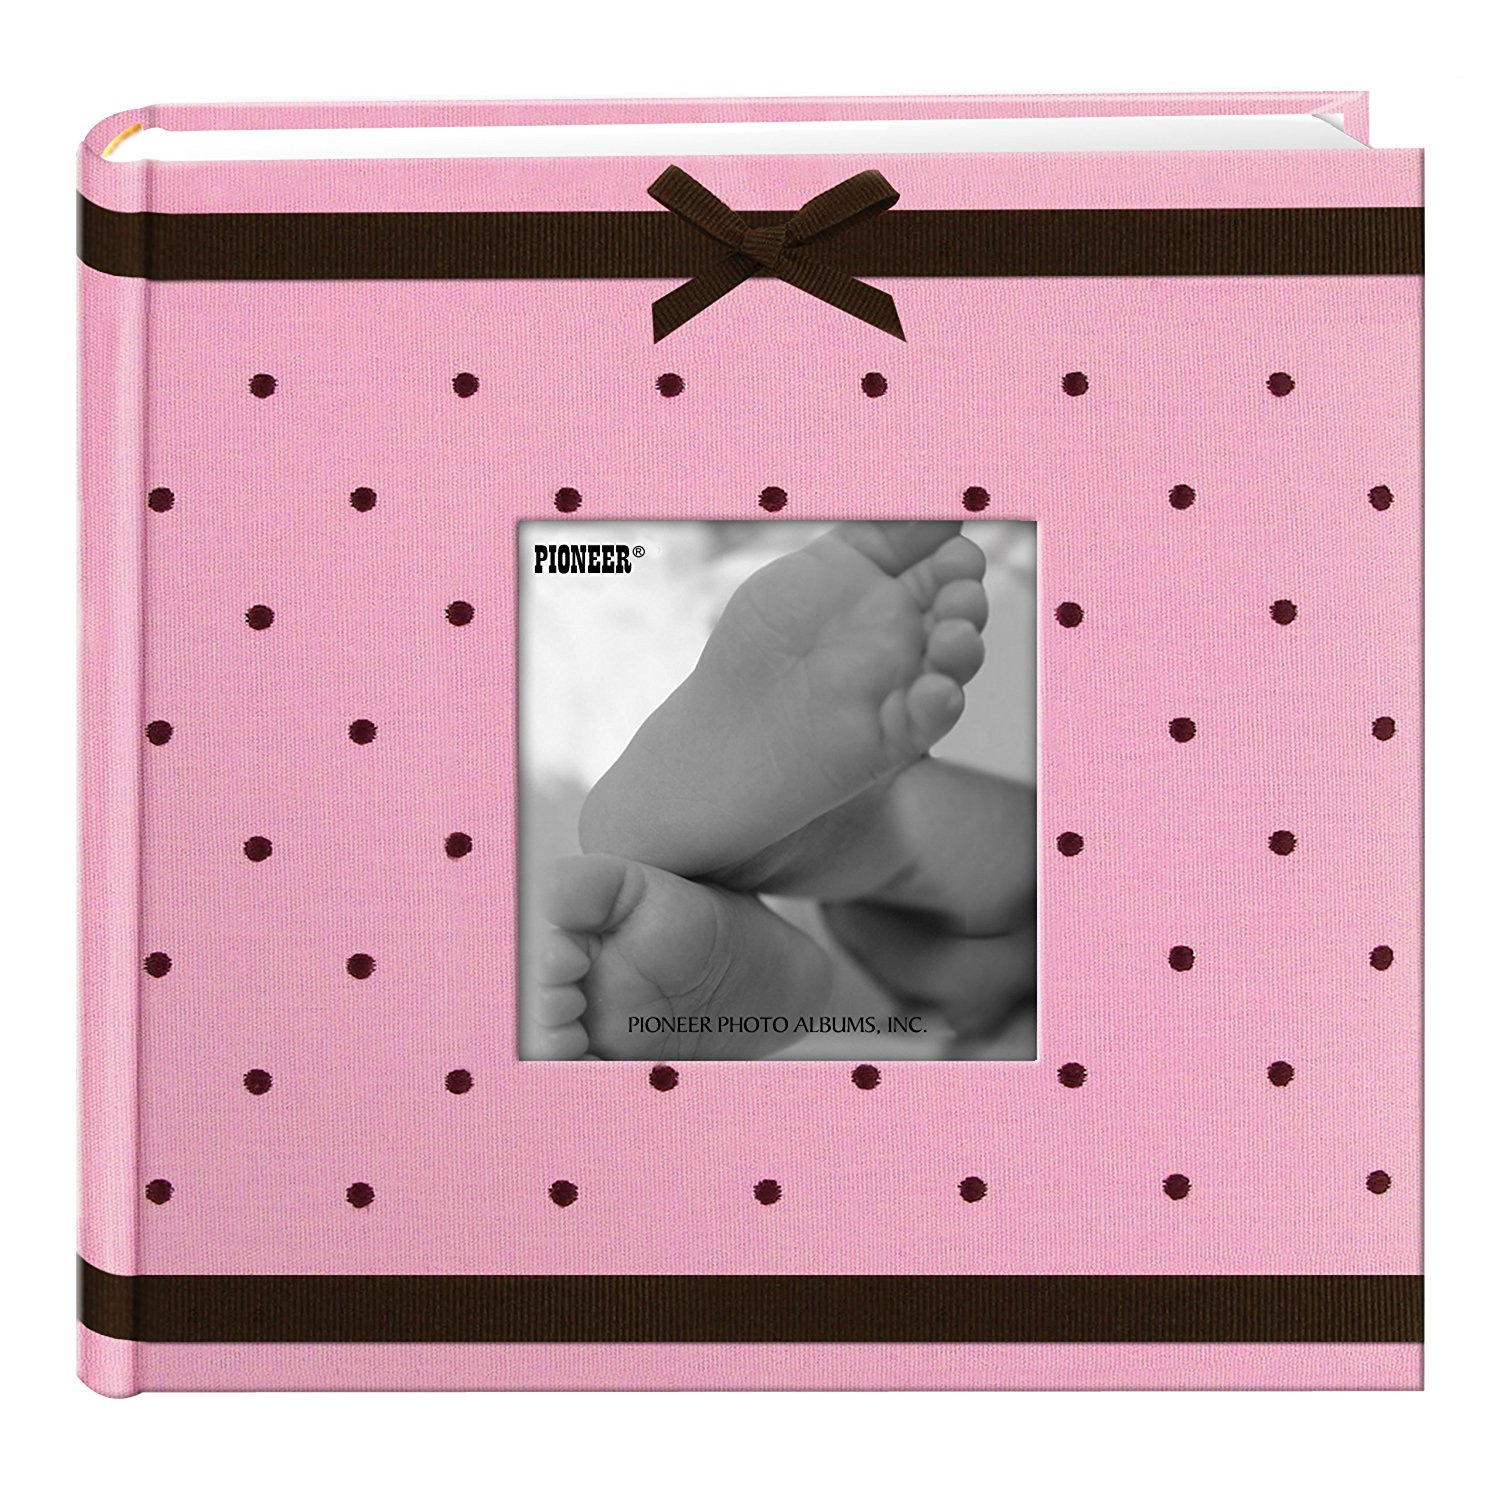 Pioneer Embroidered 200 Pocket Frame Fabric Cover Photo Album, Baby Pink